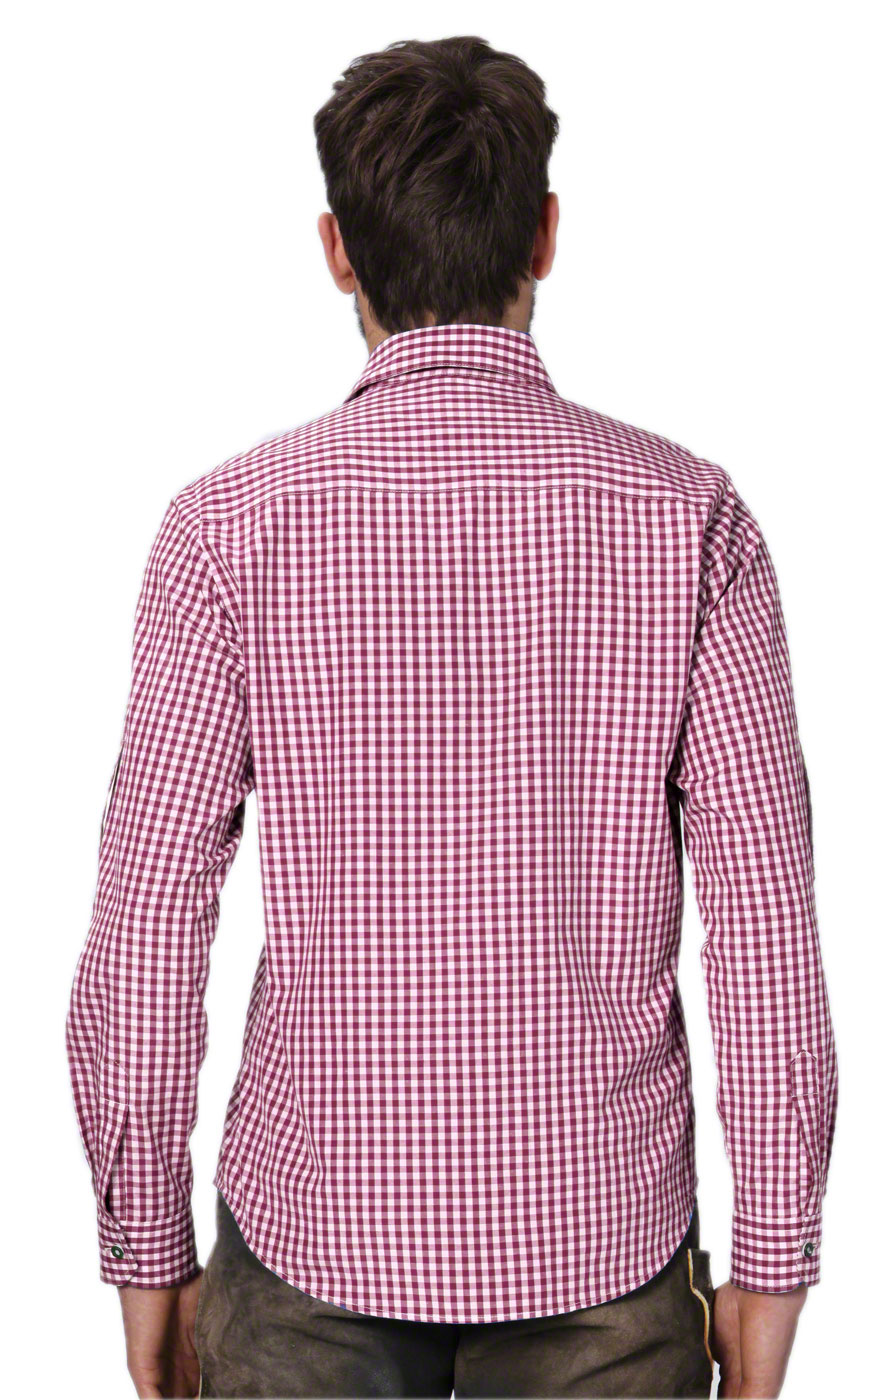 weitere Bilder von German traditional shirt checkered Campos2 bordeaux